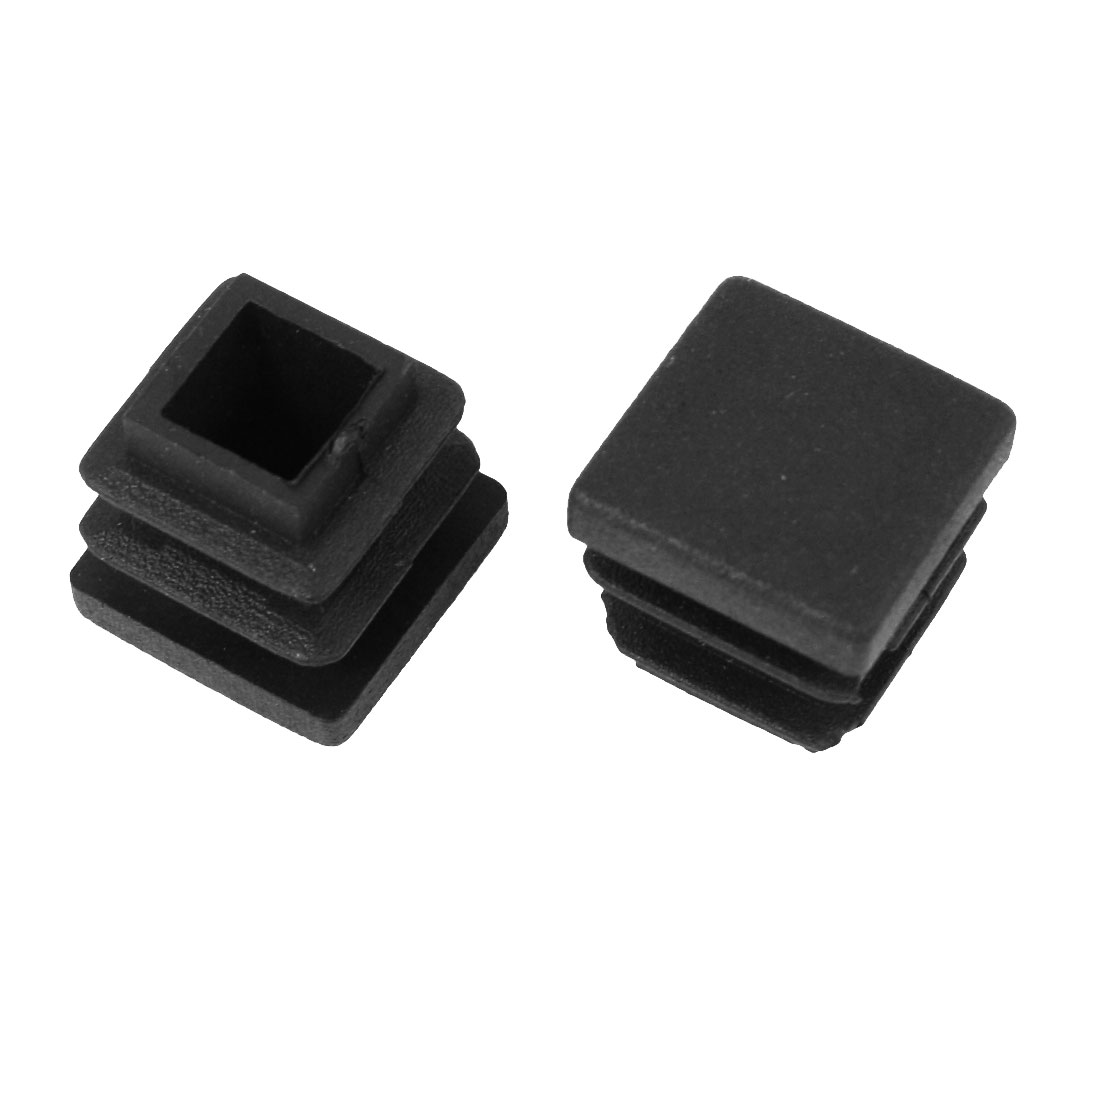 2 Pcs 16mm x 16mm Plastic Blanking End Caps Cover Square Tubing Tube Pipe Insert Black